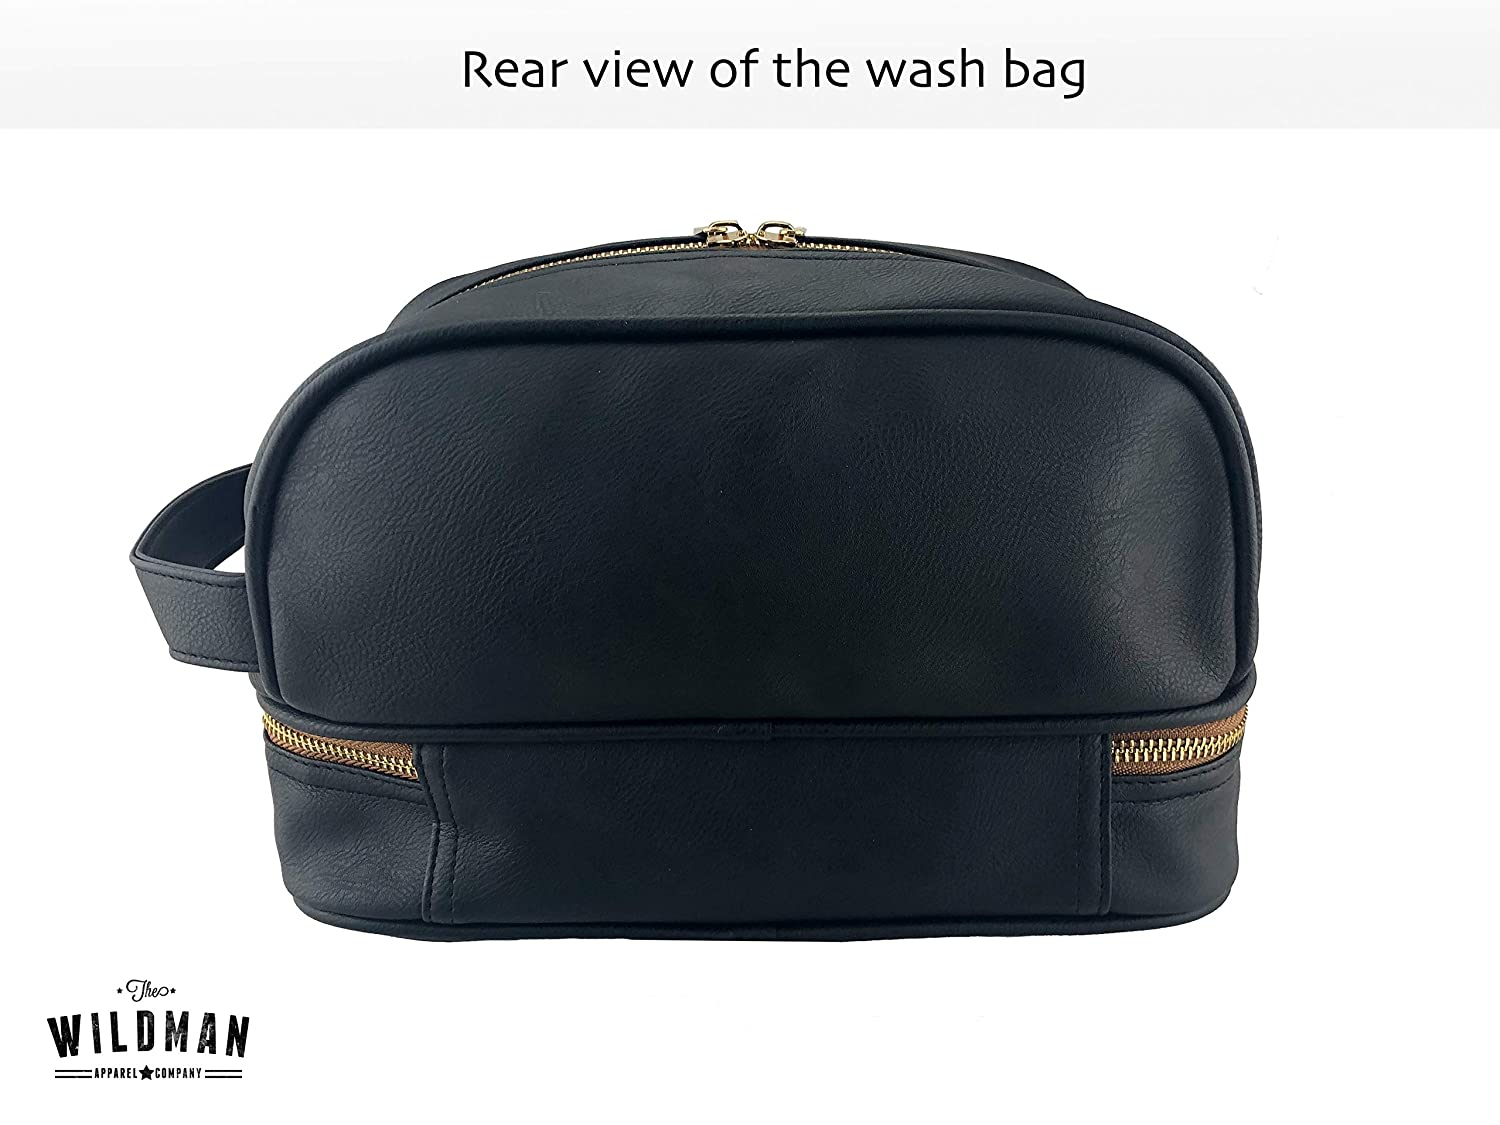 fd44041f18ef Mens Large Toiletry Bag - Wash Bag